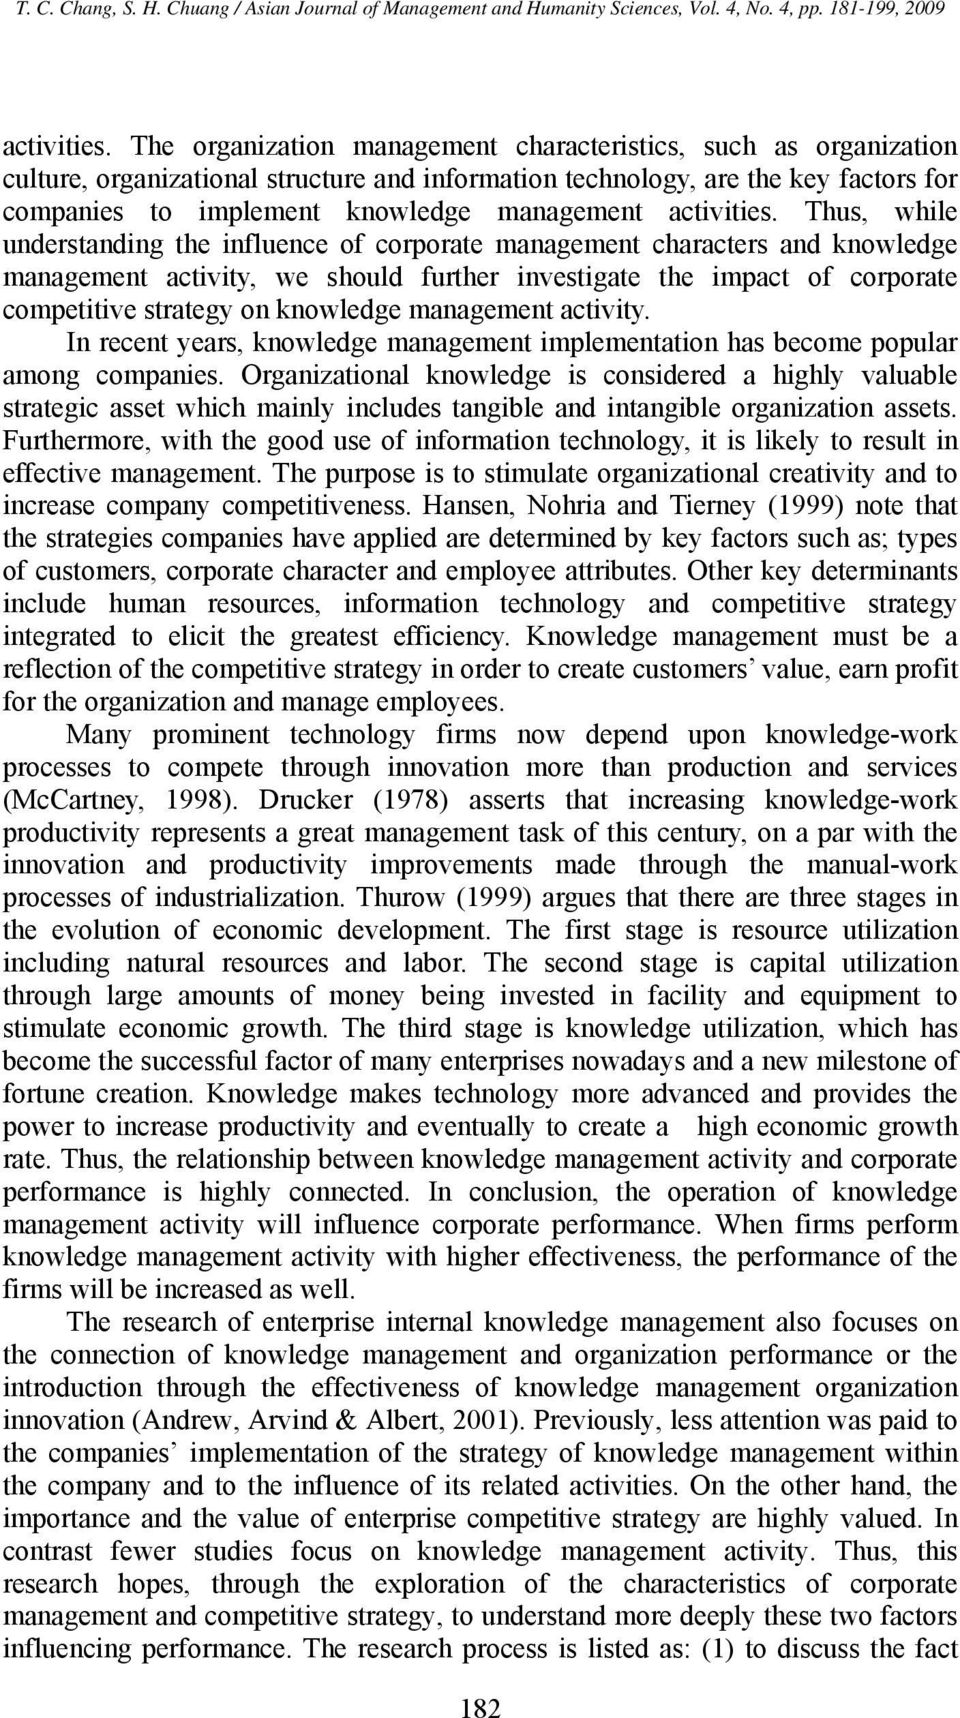 Thus, while understanding the influence of corporate management characters and knowledge management activity, we should further investigate the impact of corporate competitive strategy on knowledge